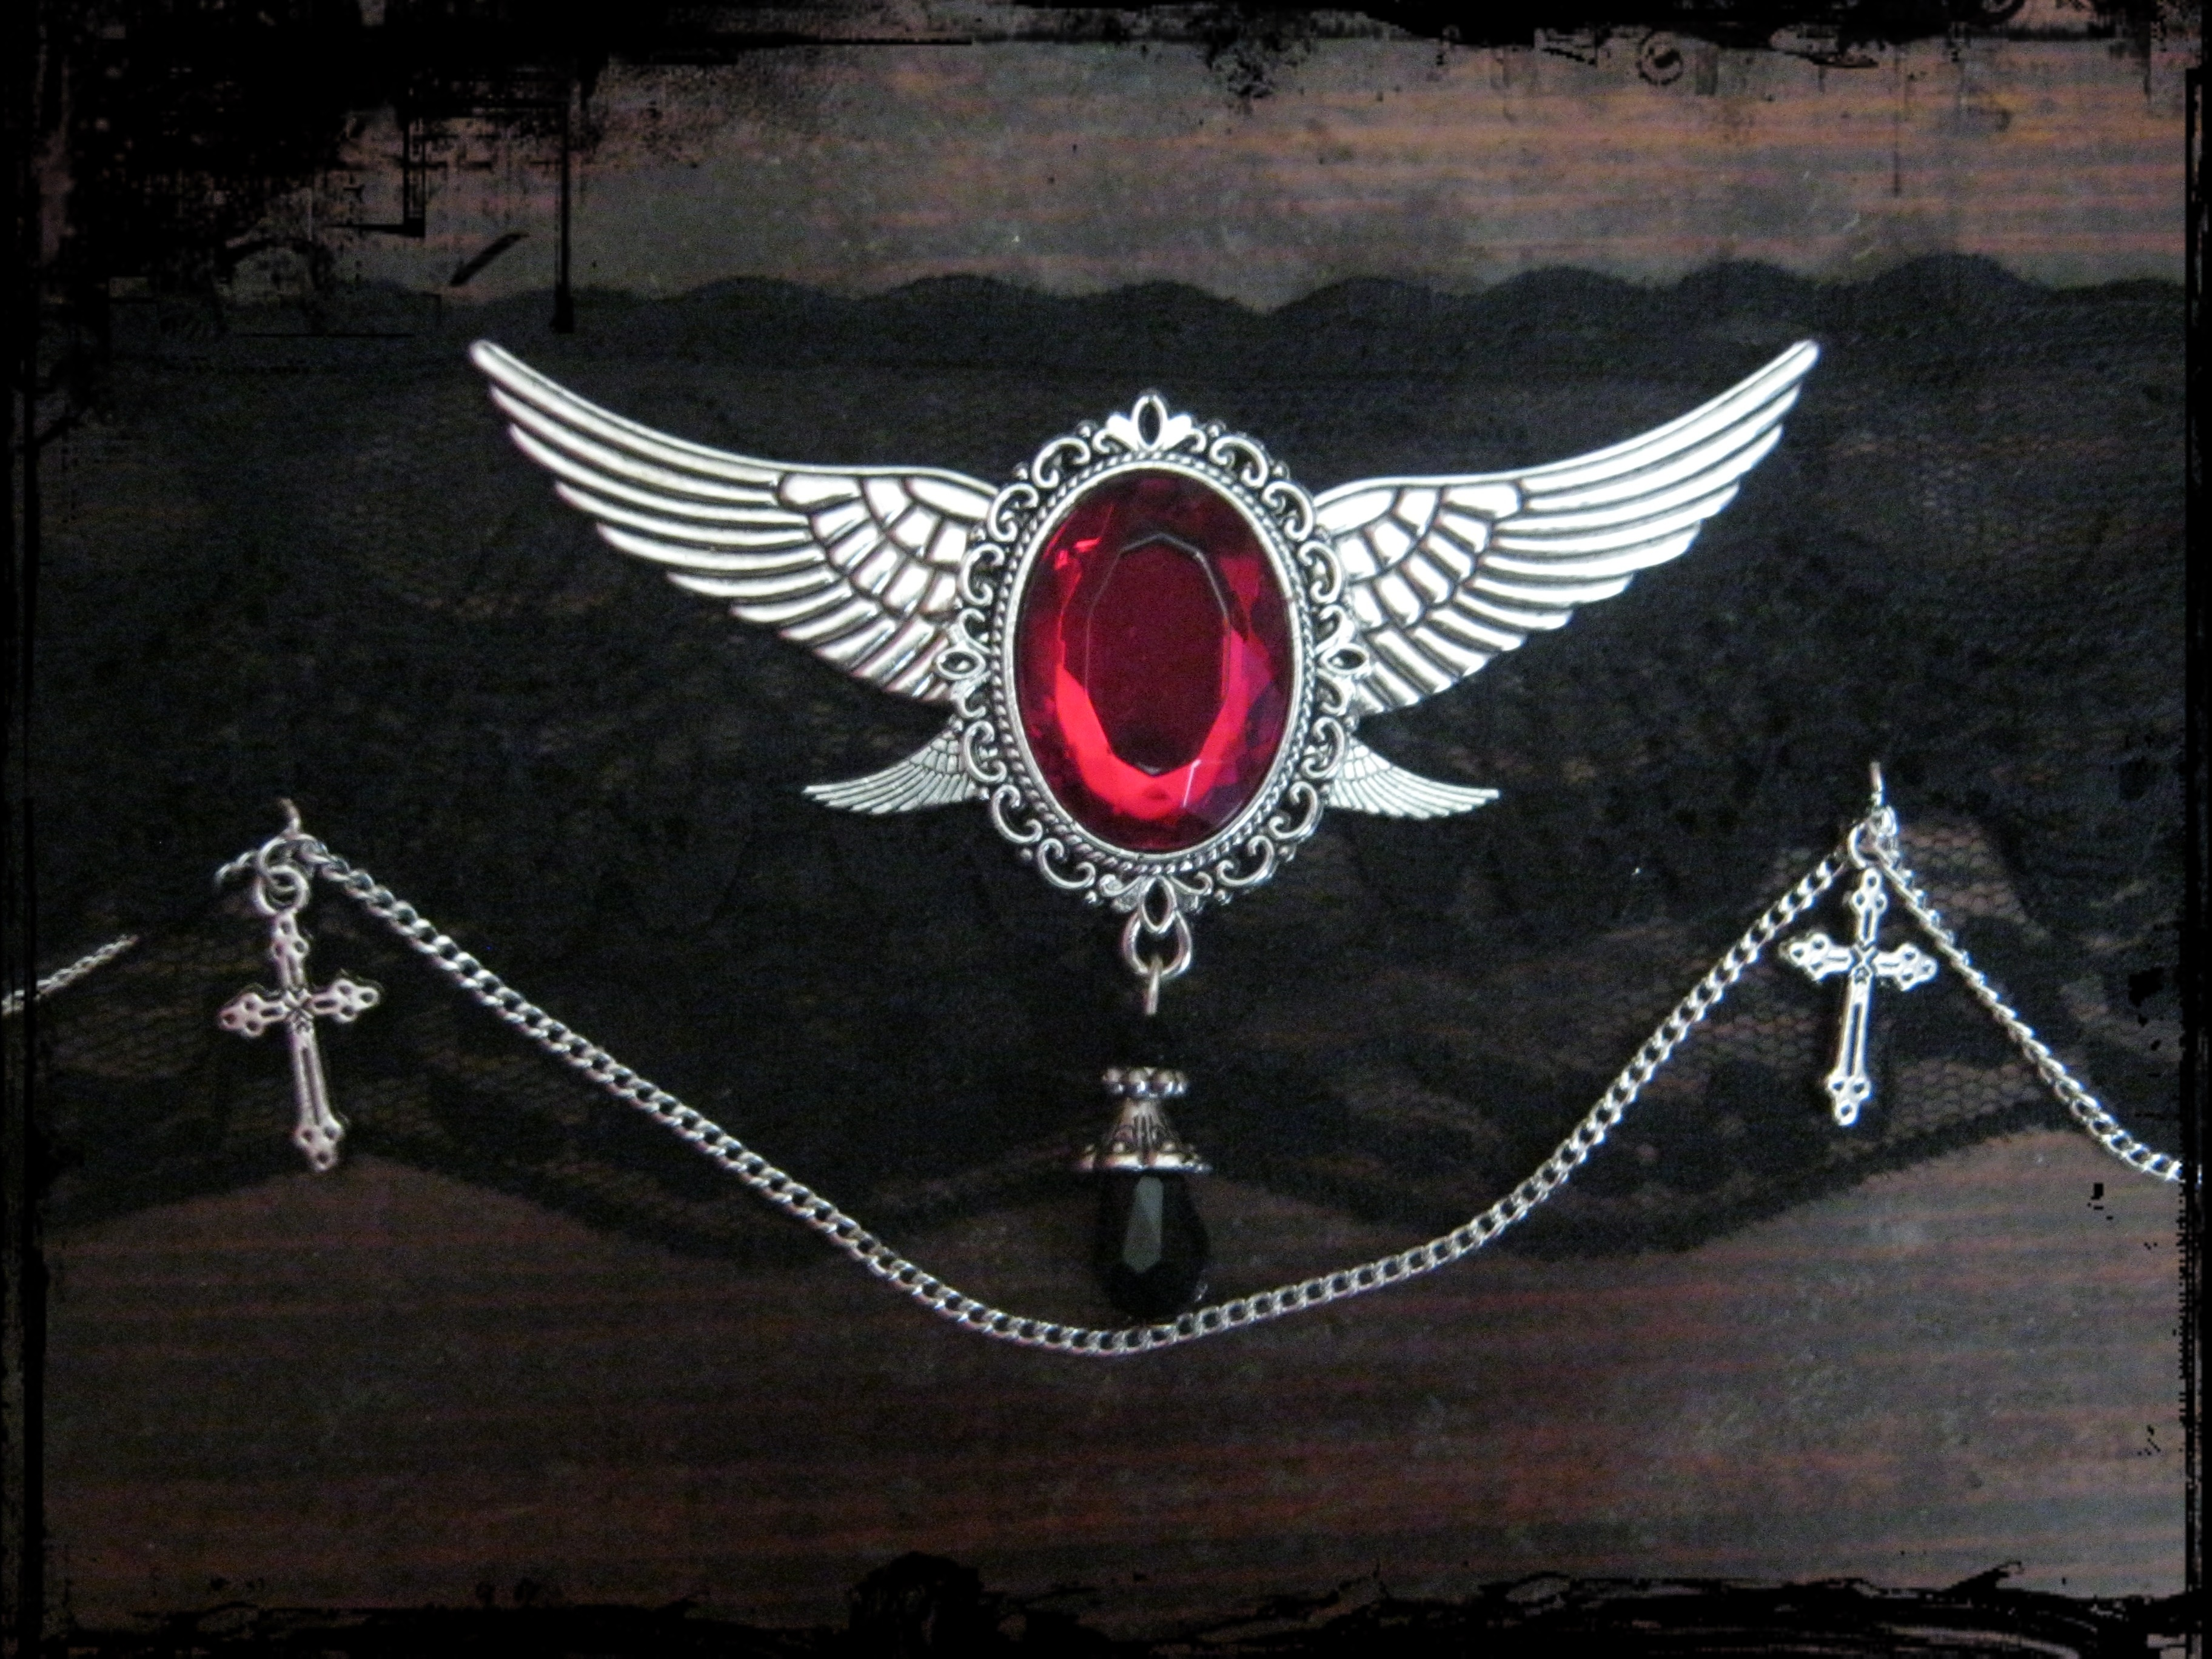 lace_choker_angel_wings_emblem_chain_crosses_necklaces_2.JPG